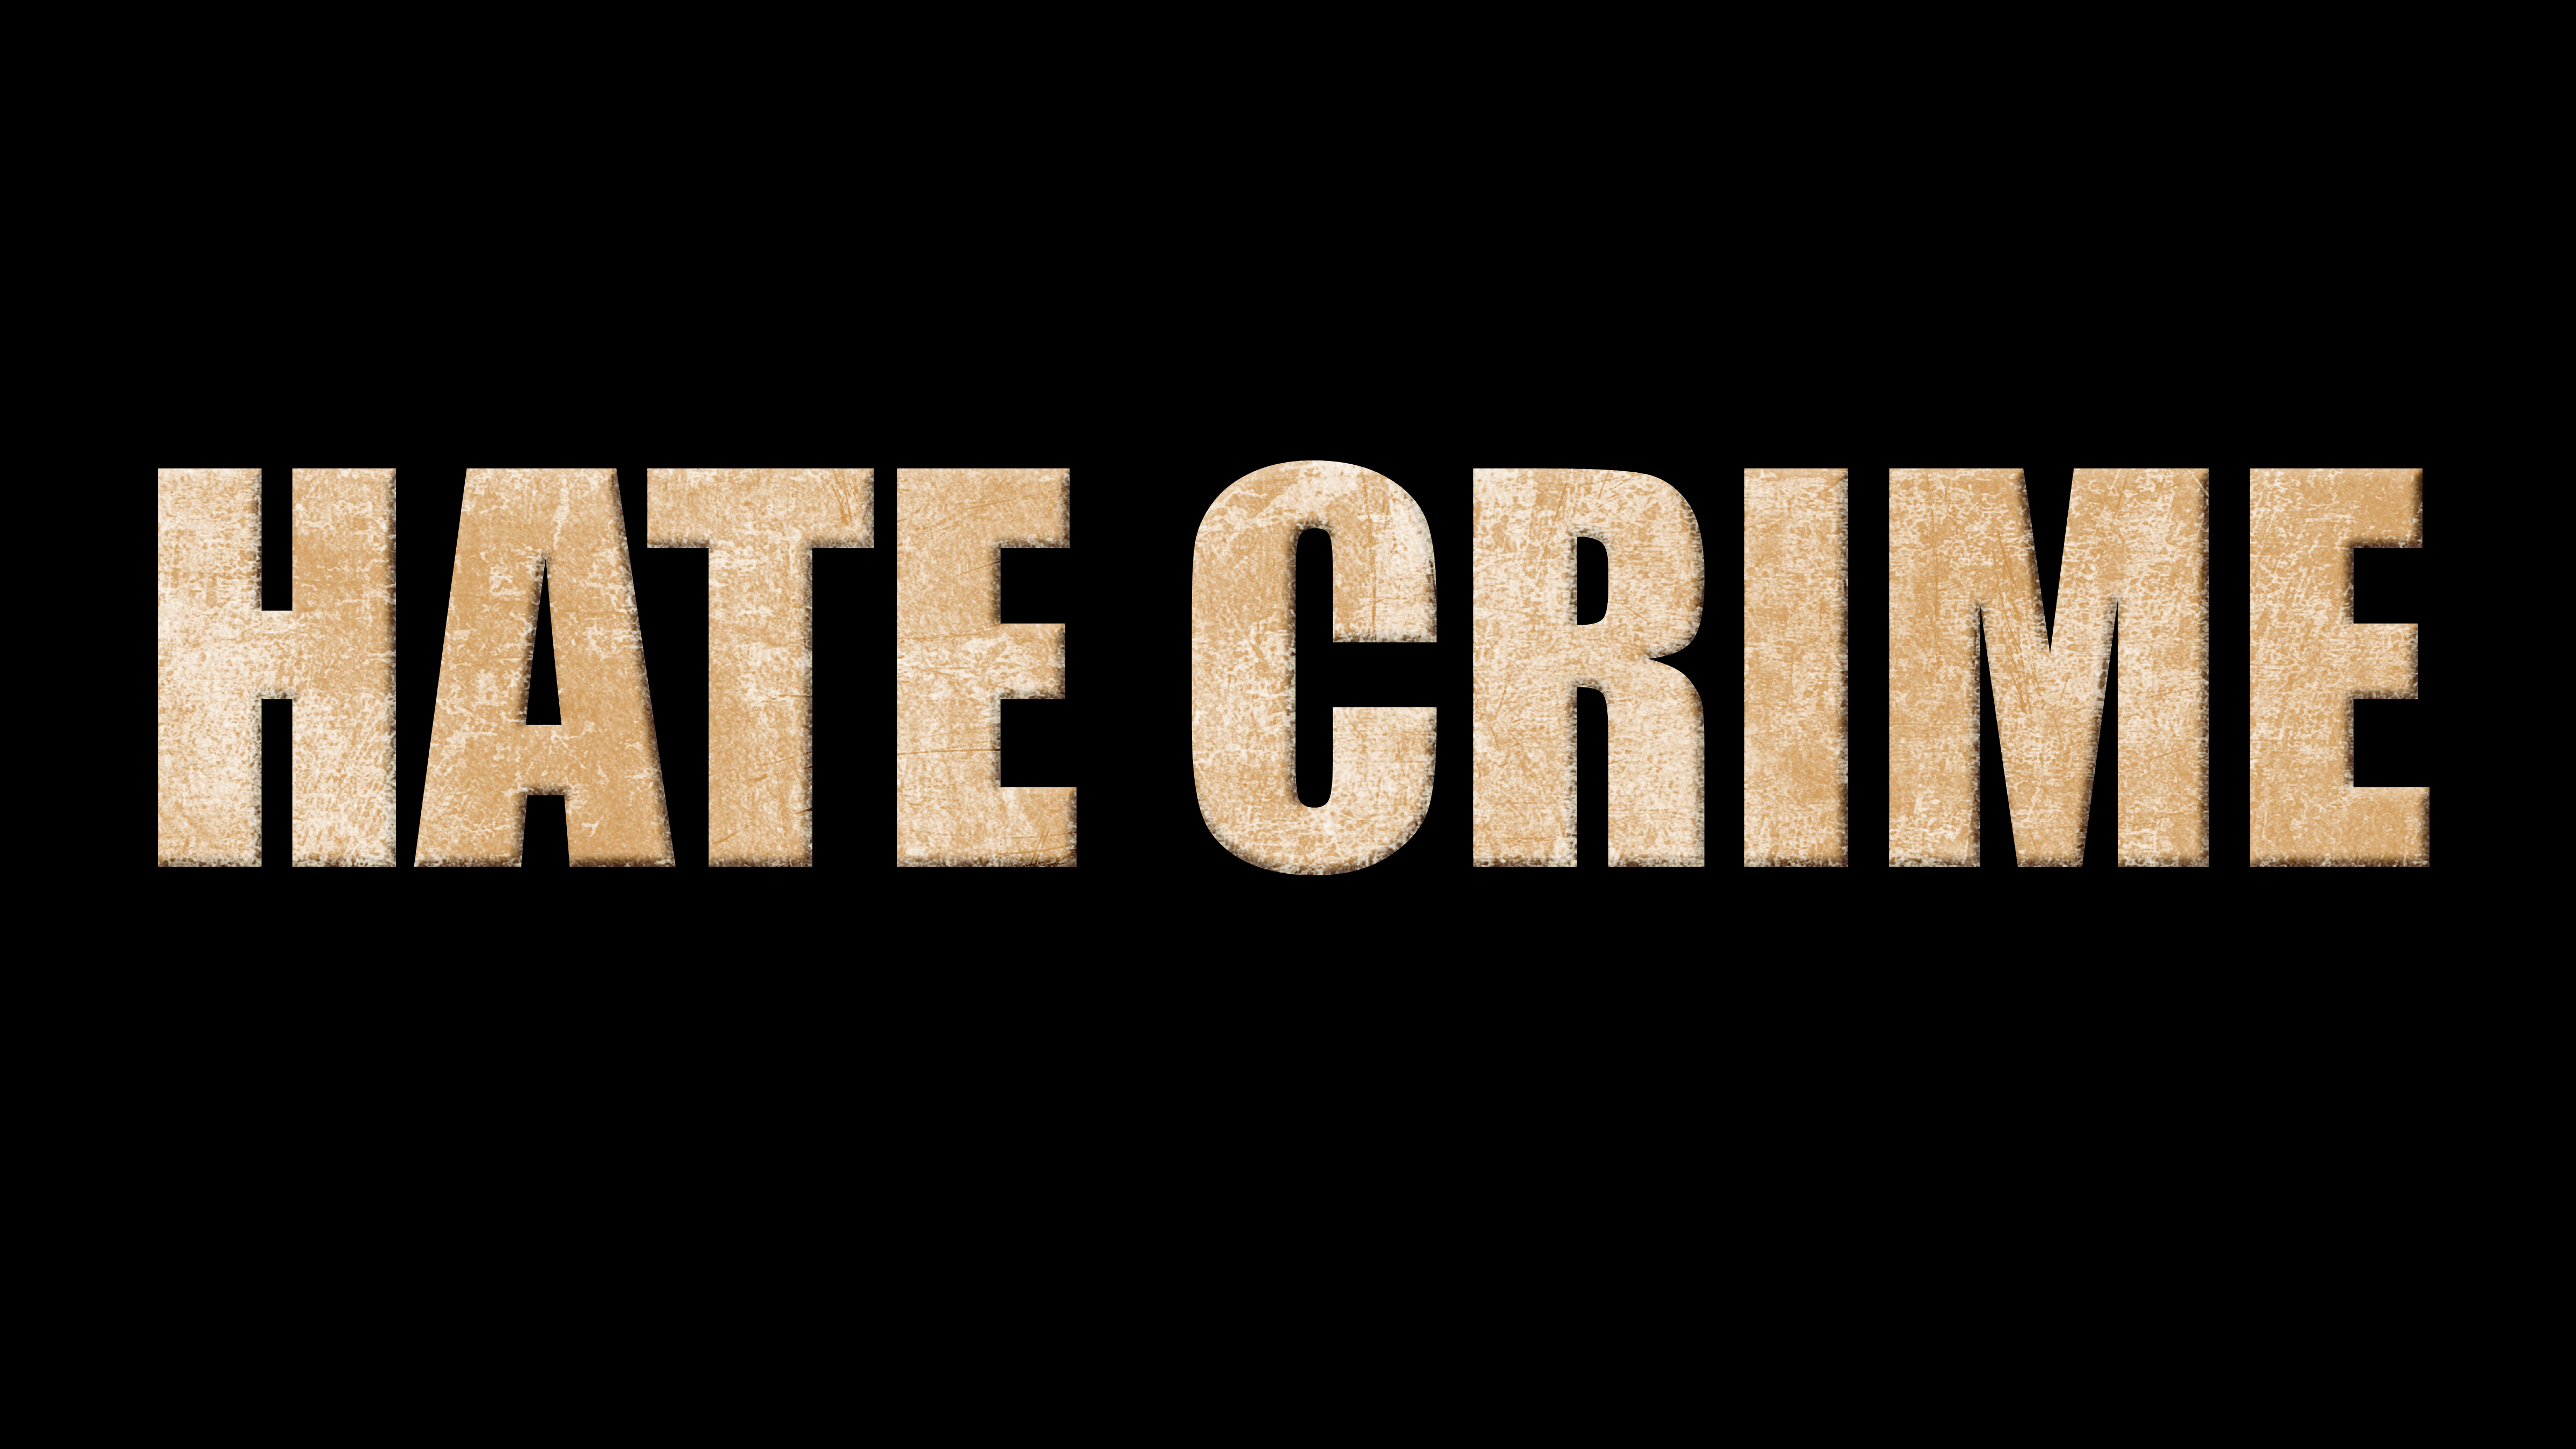 essay on hate crimes  hate crimes essays and papers 123helpme